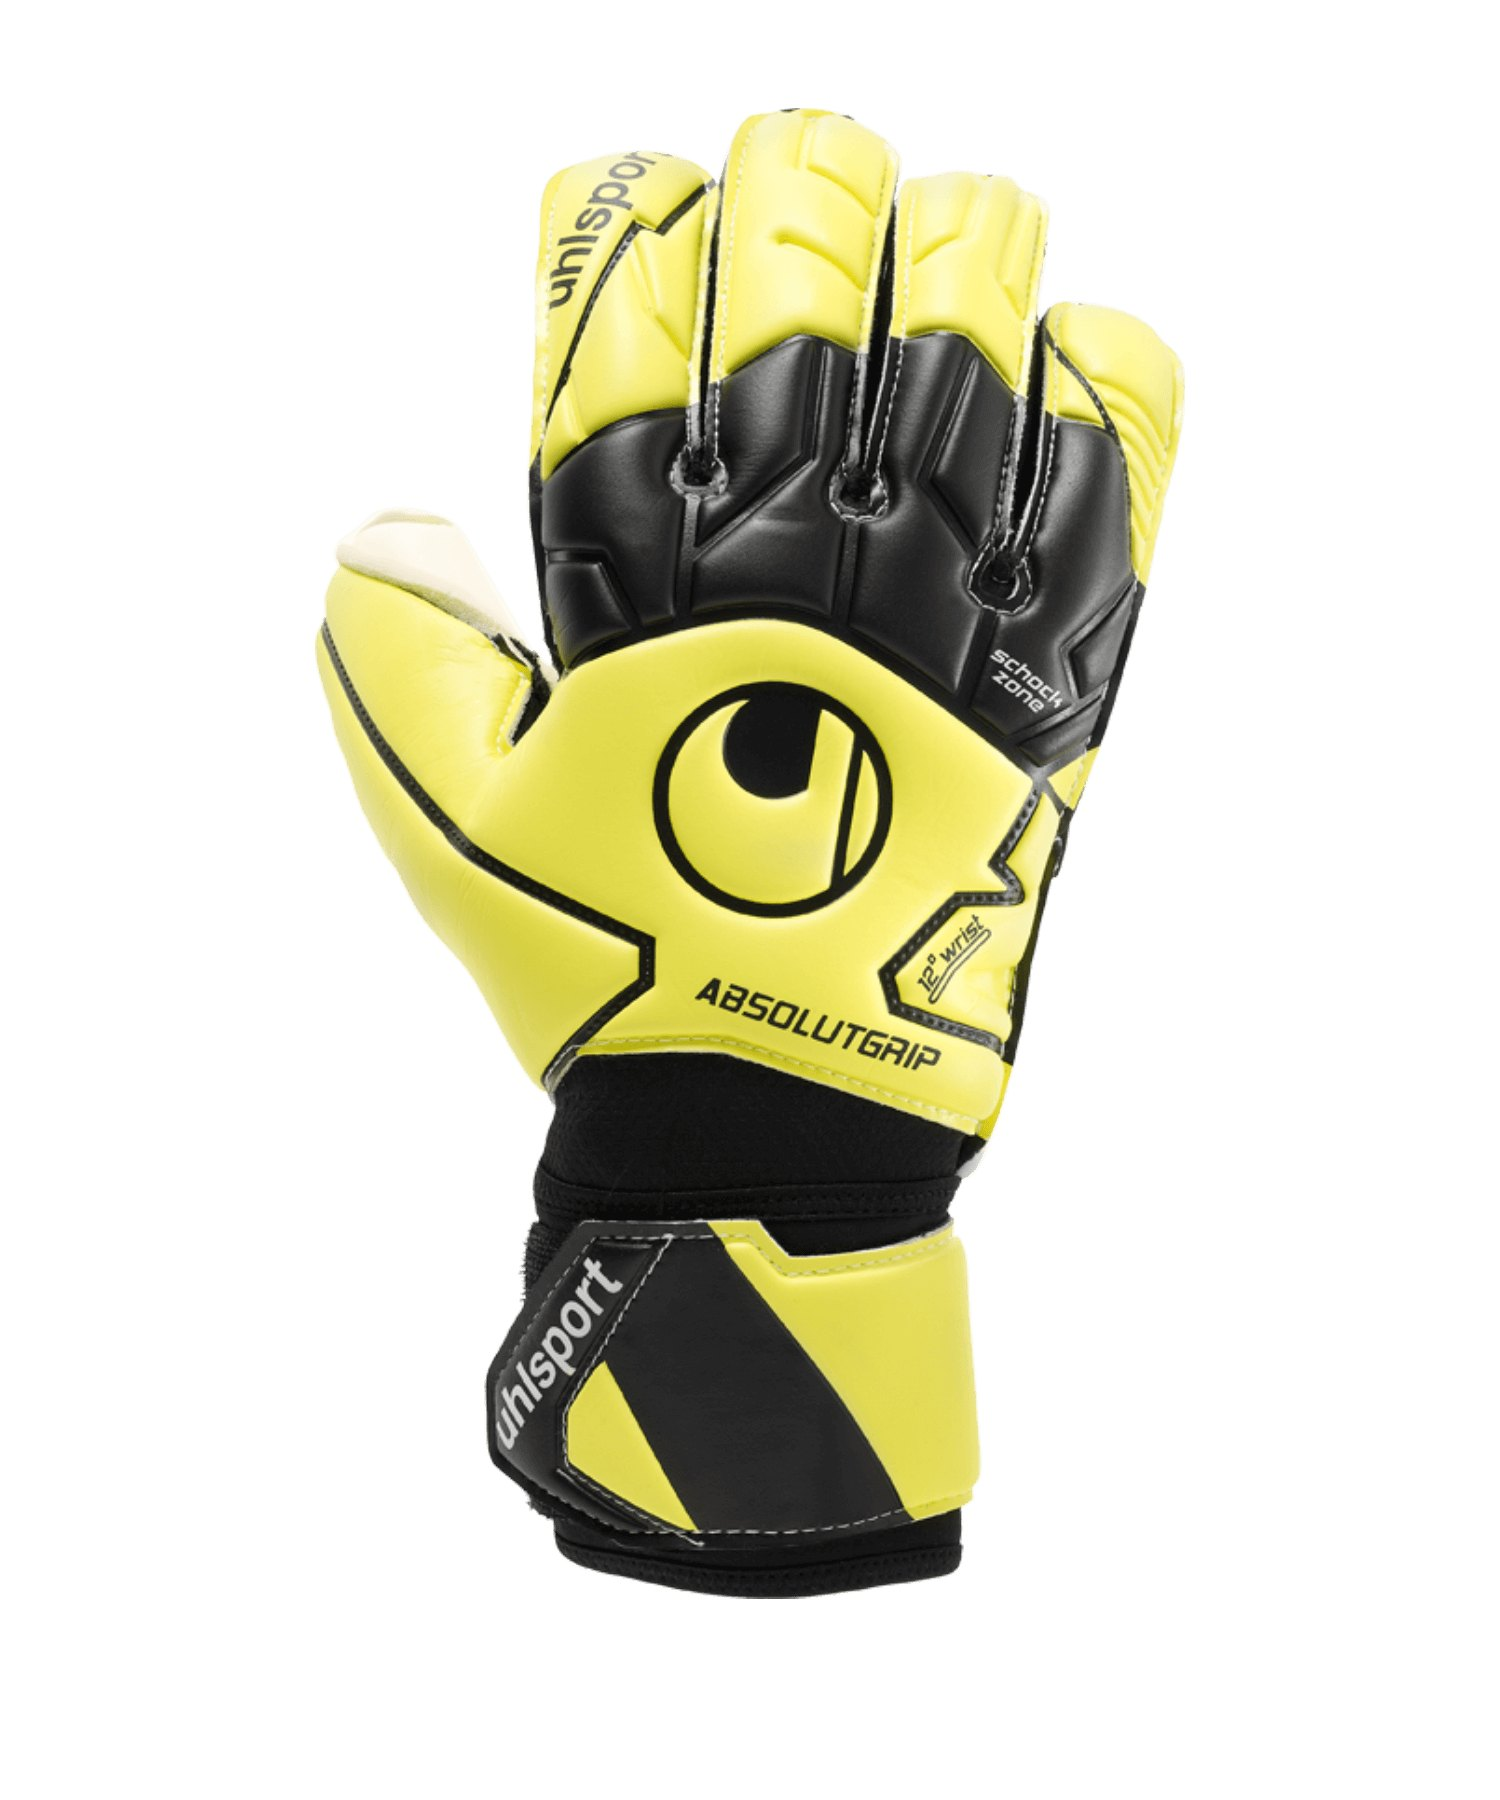 Uhlsport Absolutgrip Flex Frame Car Handschuh F01 - gelb